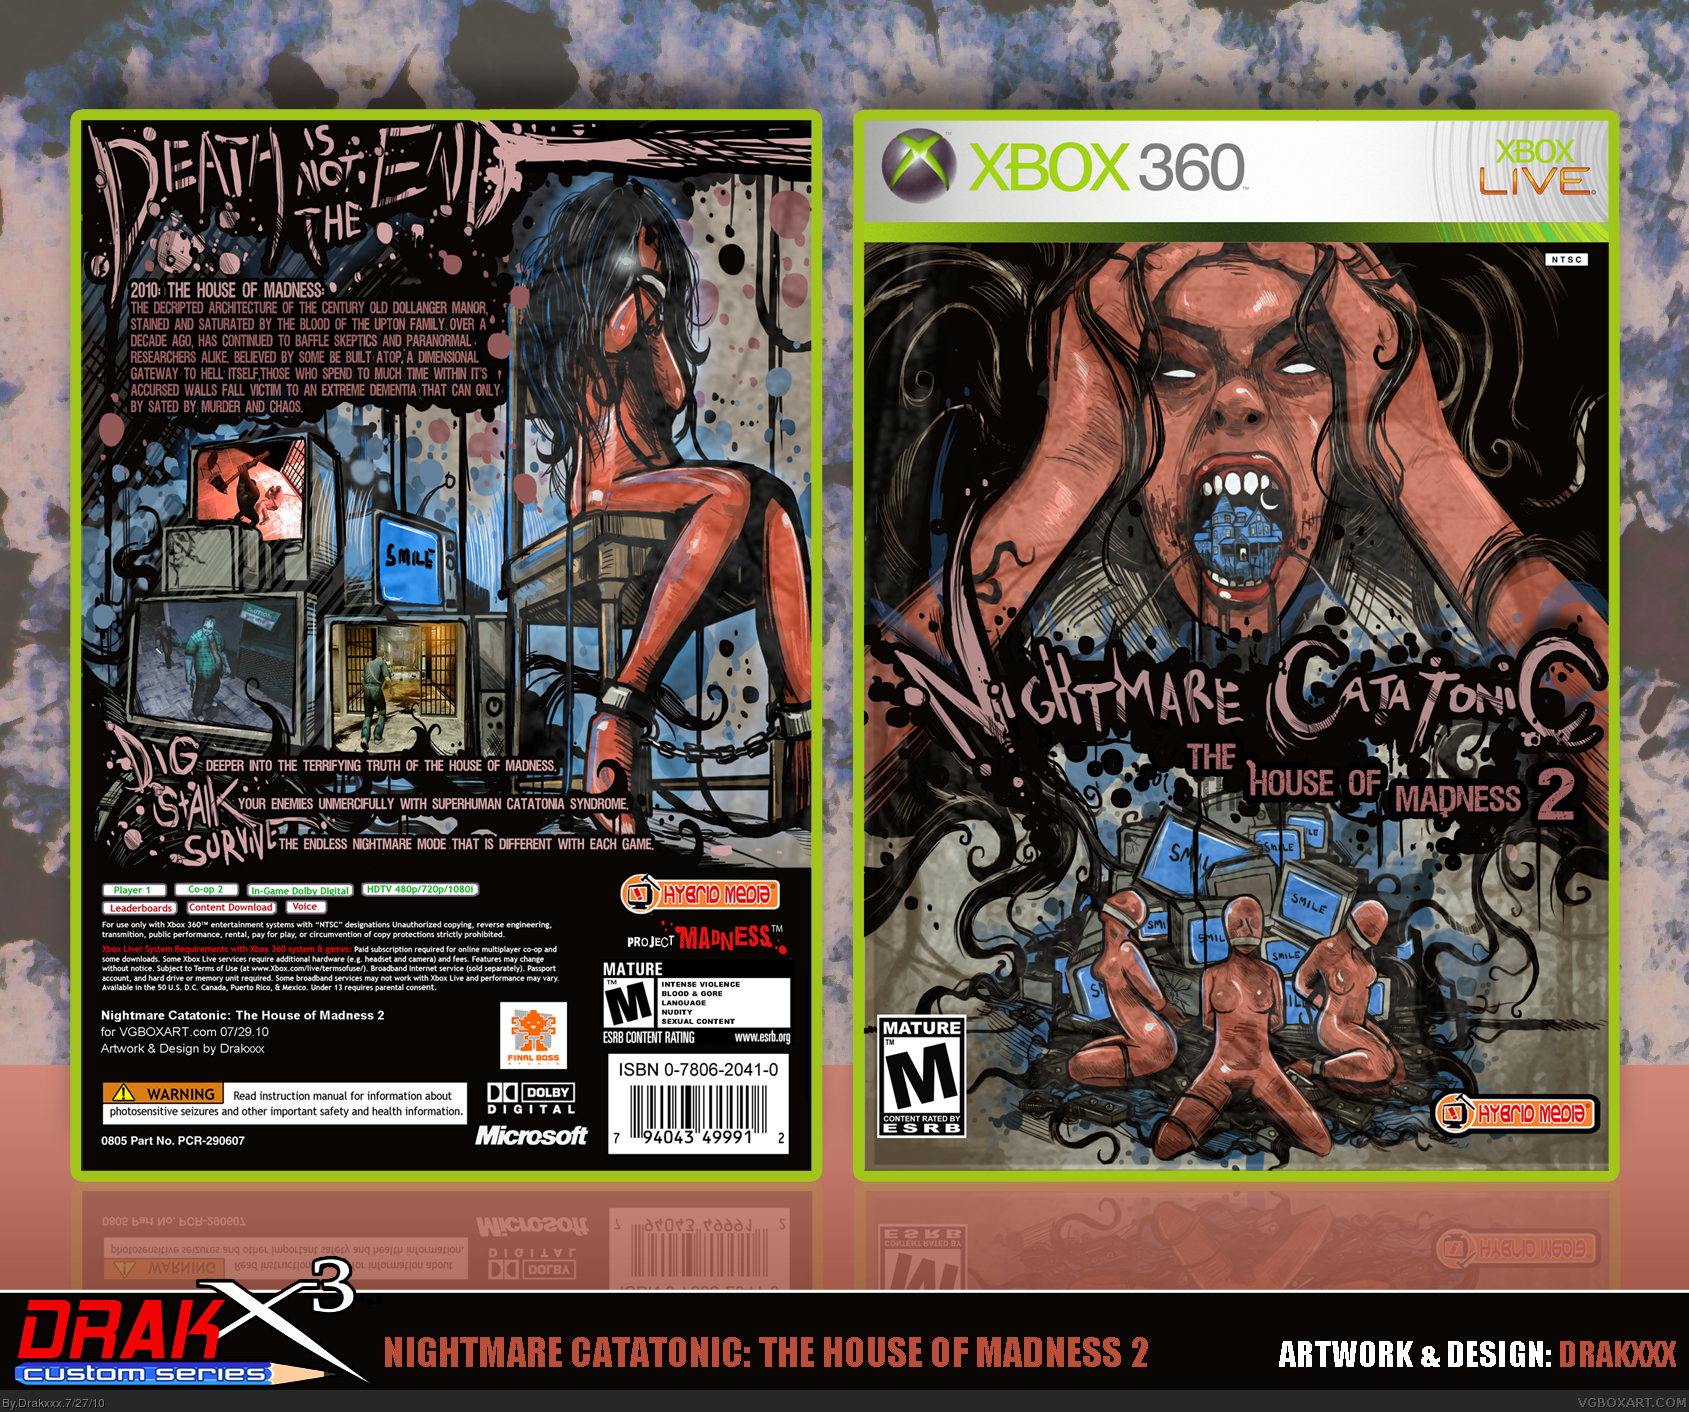 Nightmare Catatonic: The House of Madness 2 box cover